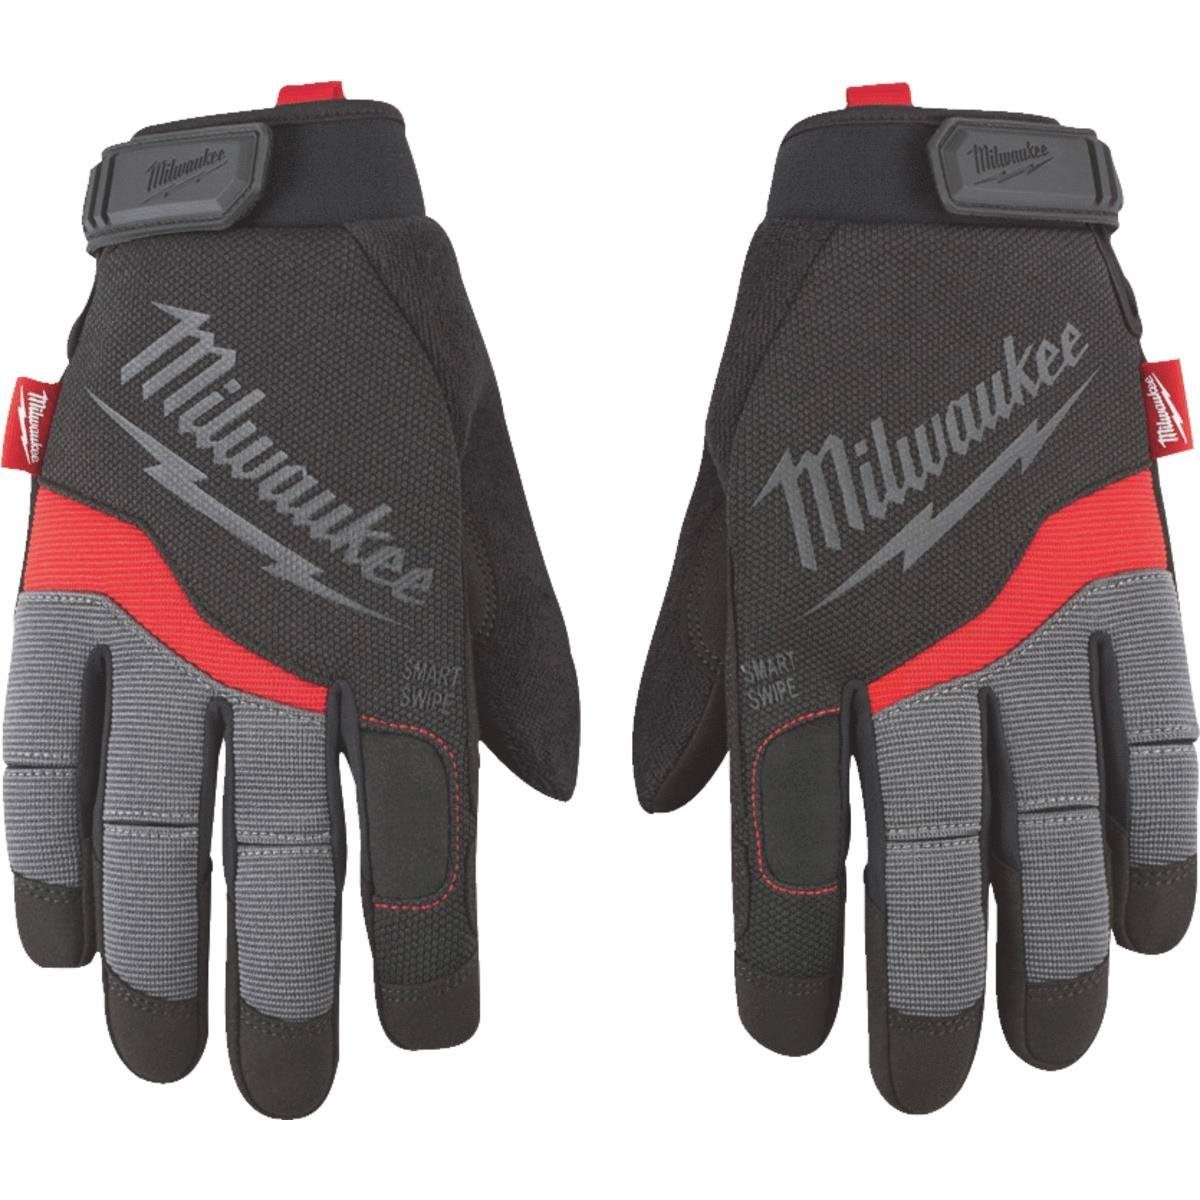 Milwaukee Performance Work Gloves – XLarge